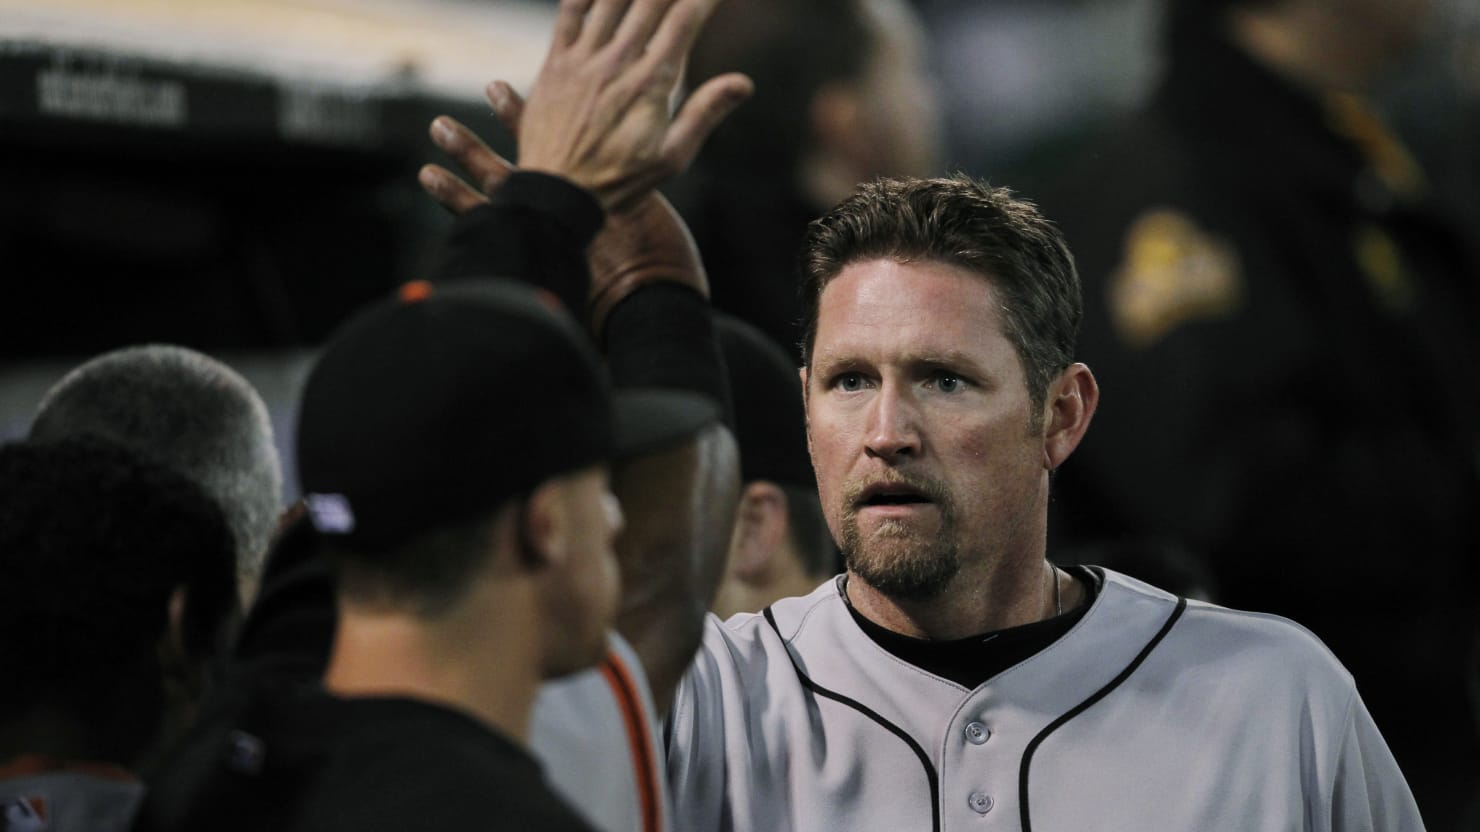 Aubrey Huff Not Invited to San Francisco Giants World Series Reunion Because of 'Unacceptable' Tweets